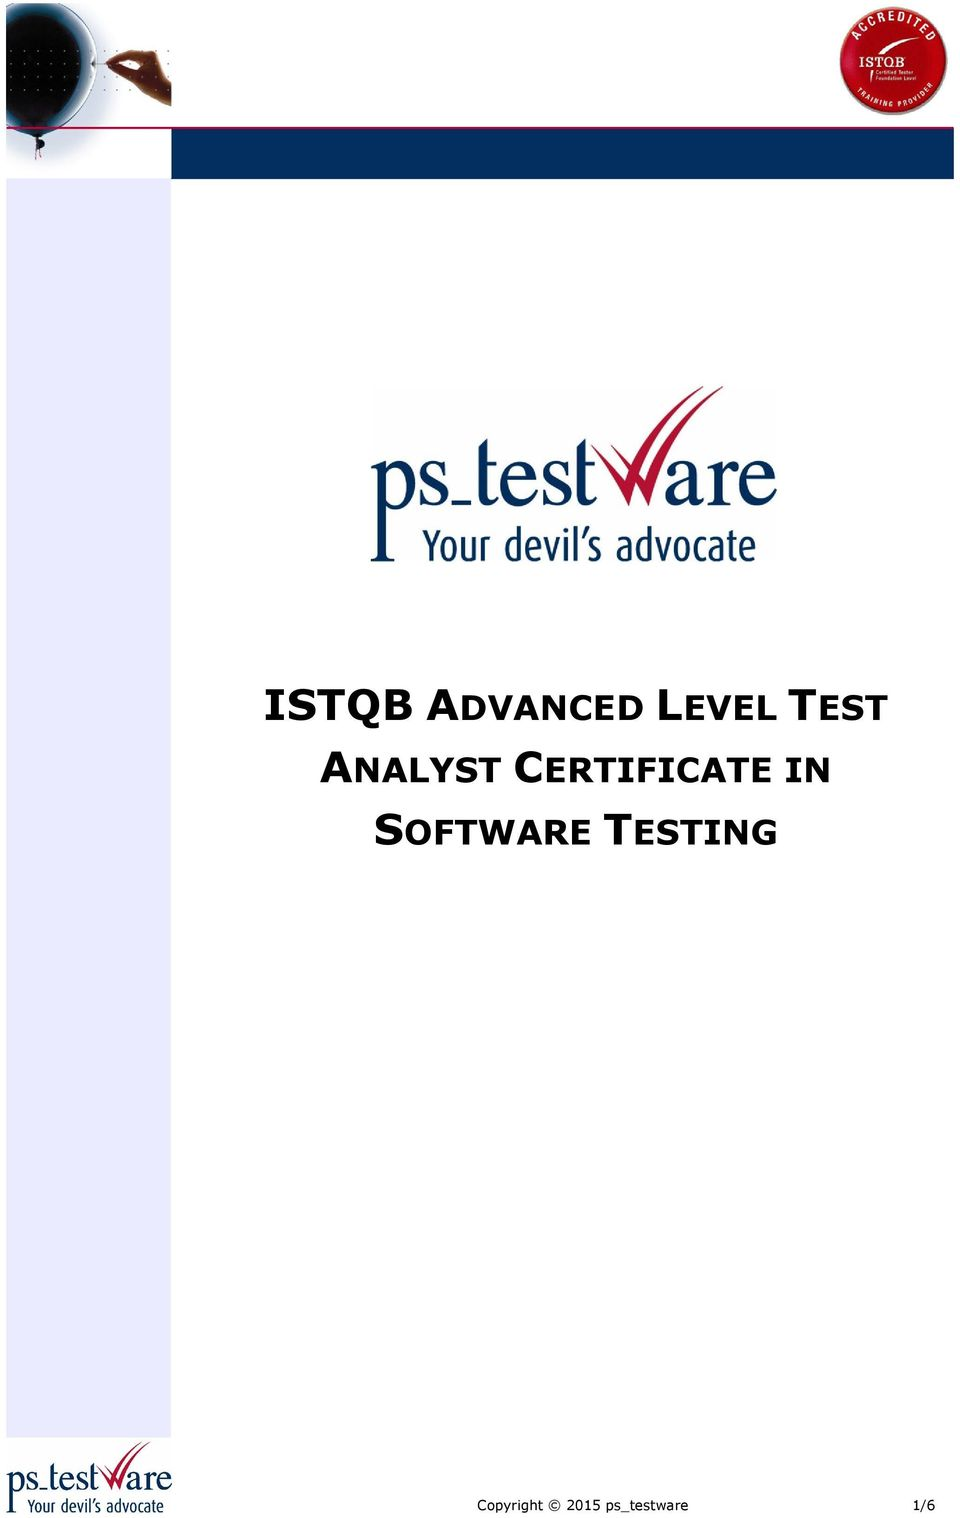 CERTIFICATE IN SOFTWARE